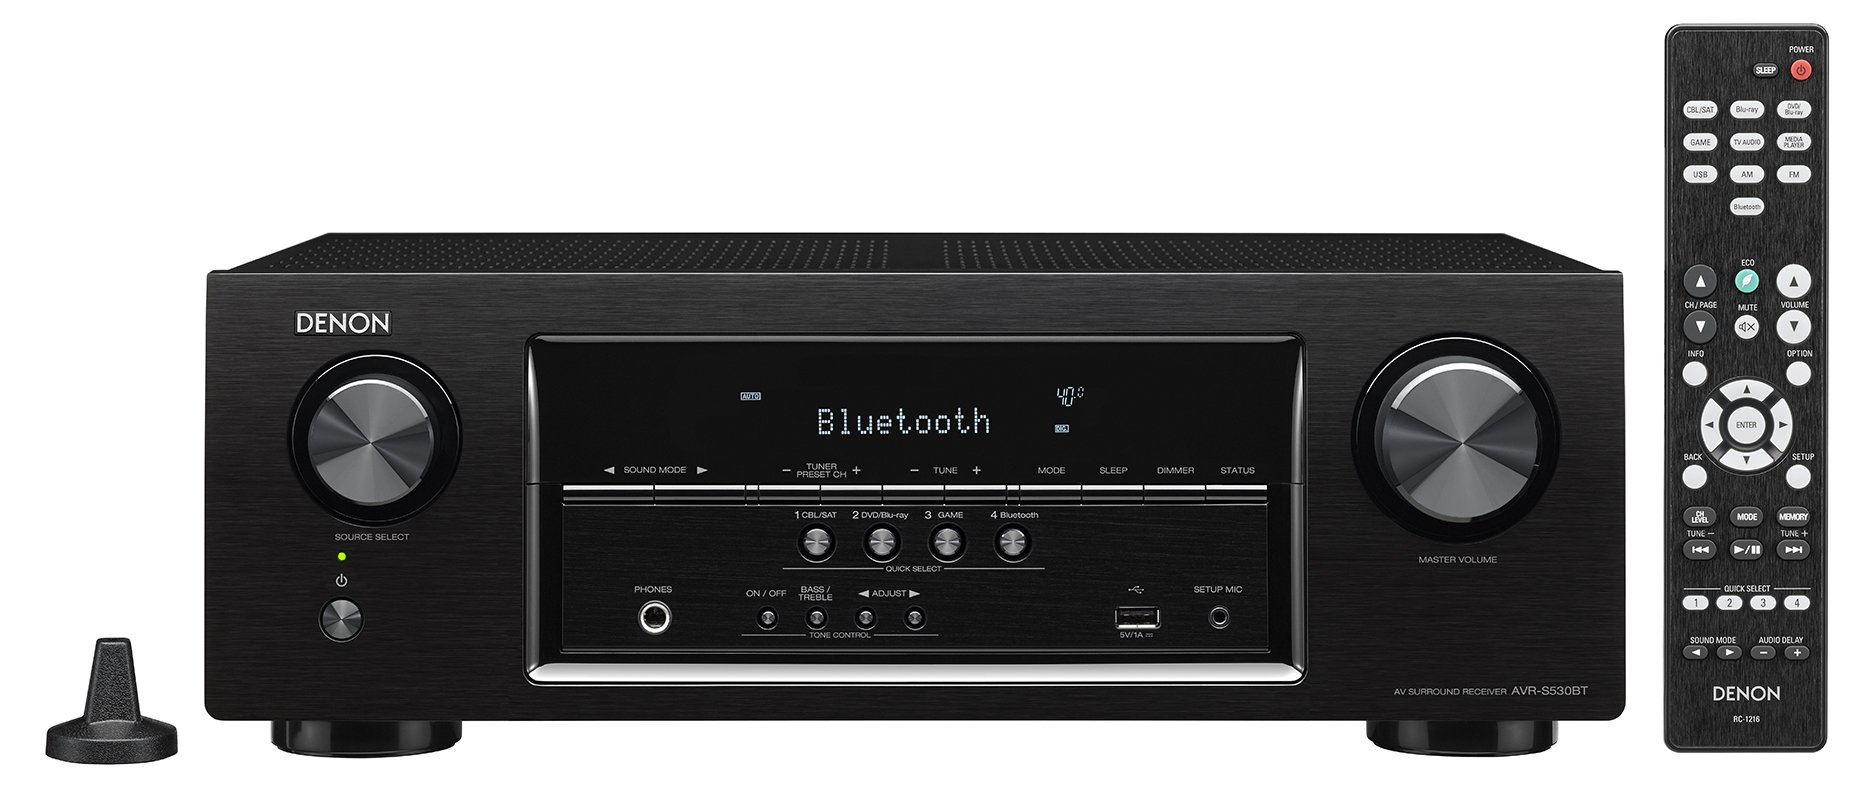 Denon AVRS530BT 5.2 Channel Full 4K Ultra HD AV Receiver by Denon